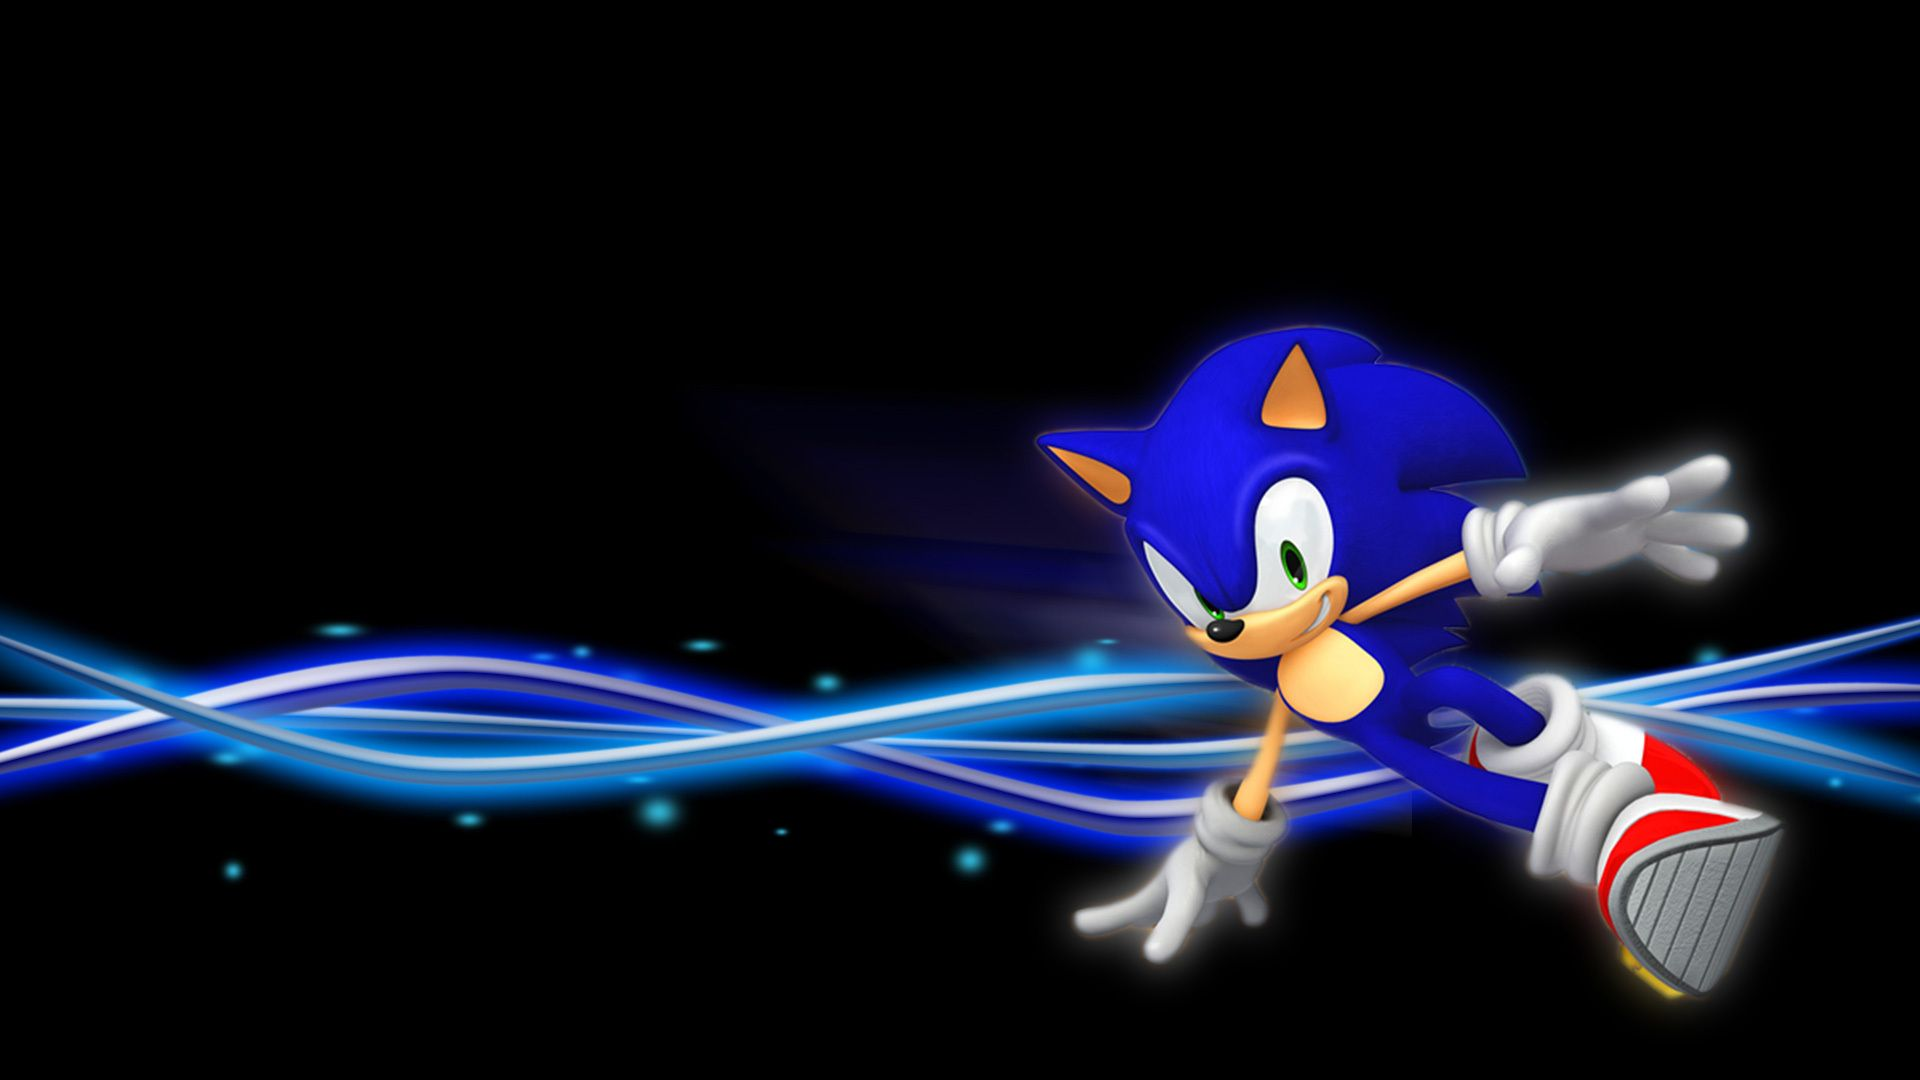 super sonic 10 inch tablet